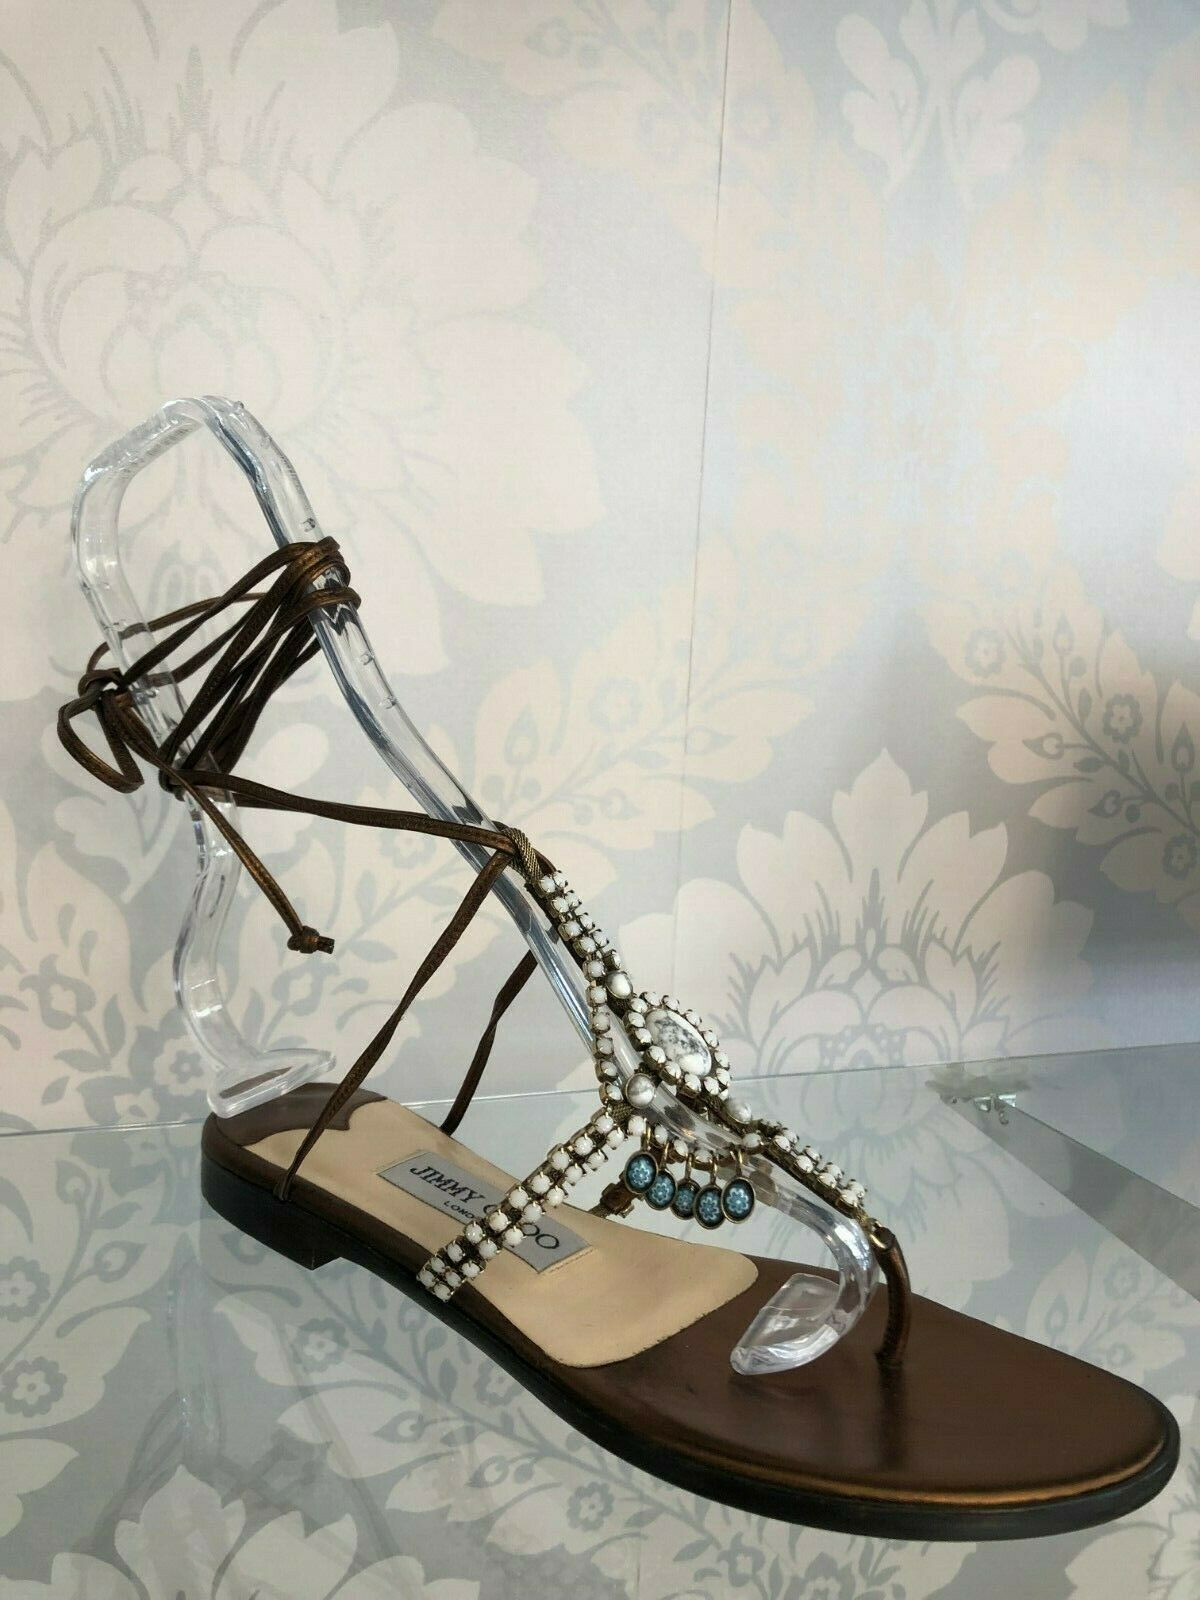 JIMMY CHOO Bronze Leather Strappy Sandals w/ Beaded Front Sz 35.5/US 5.5 $525